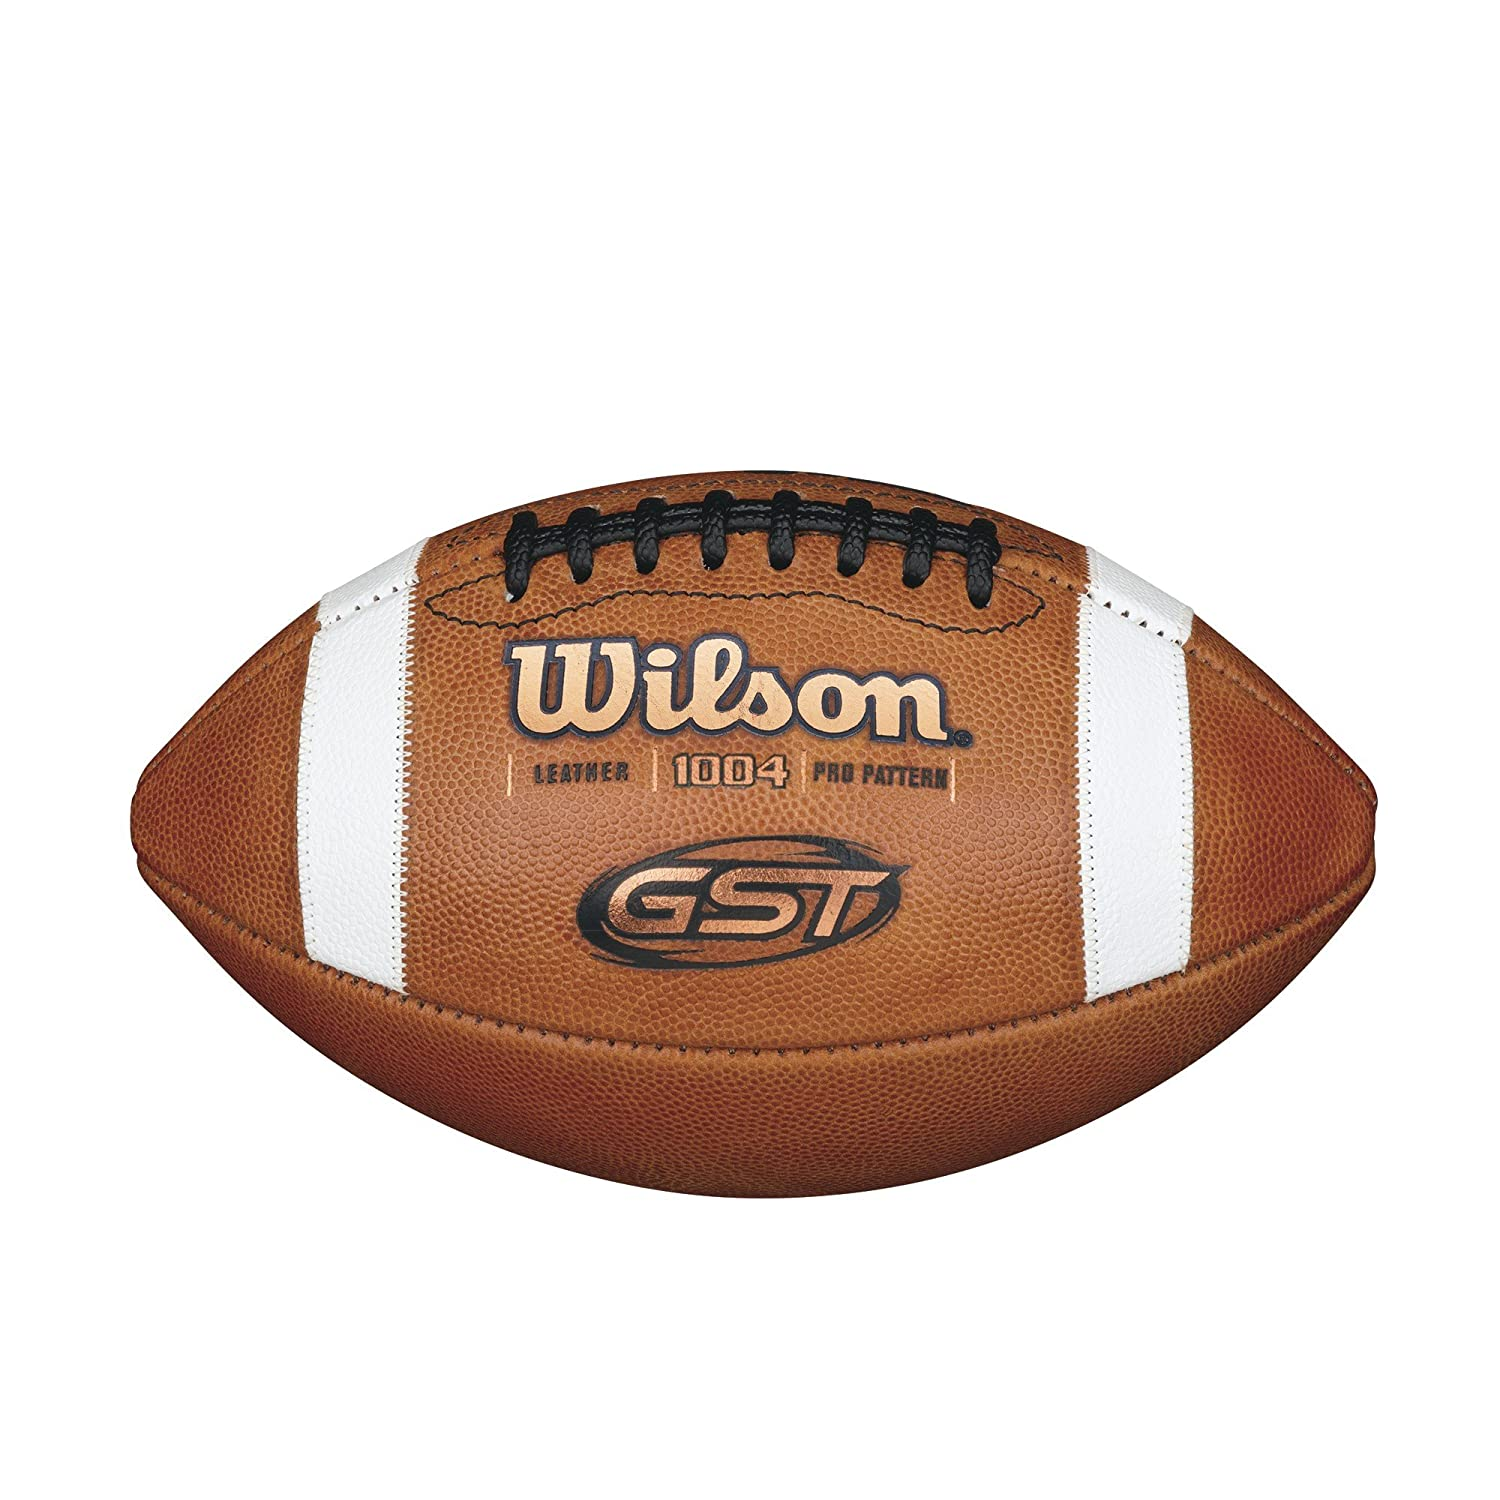 Wilson GST 1004 Pro Pattern Official Football WTF1004B